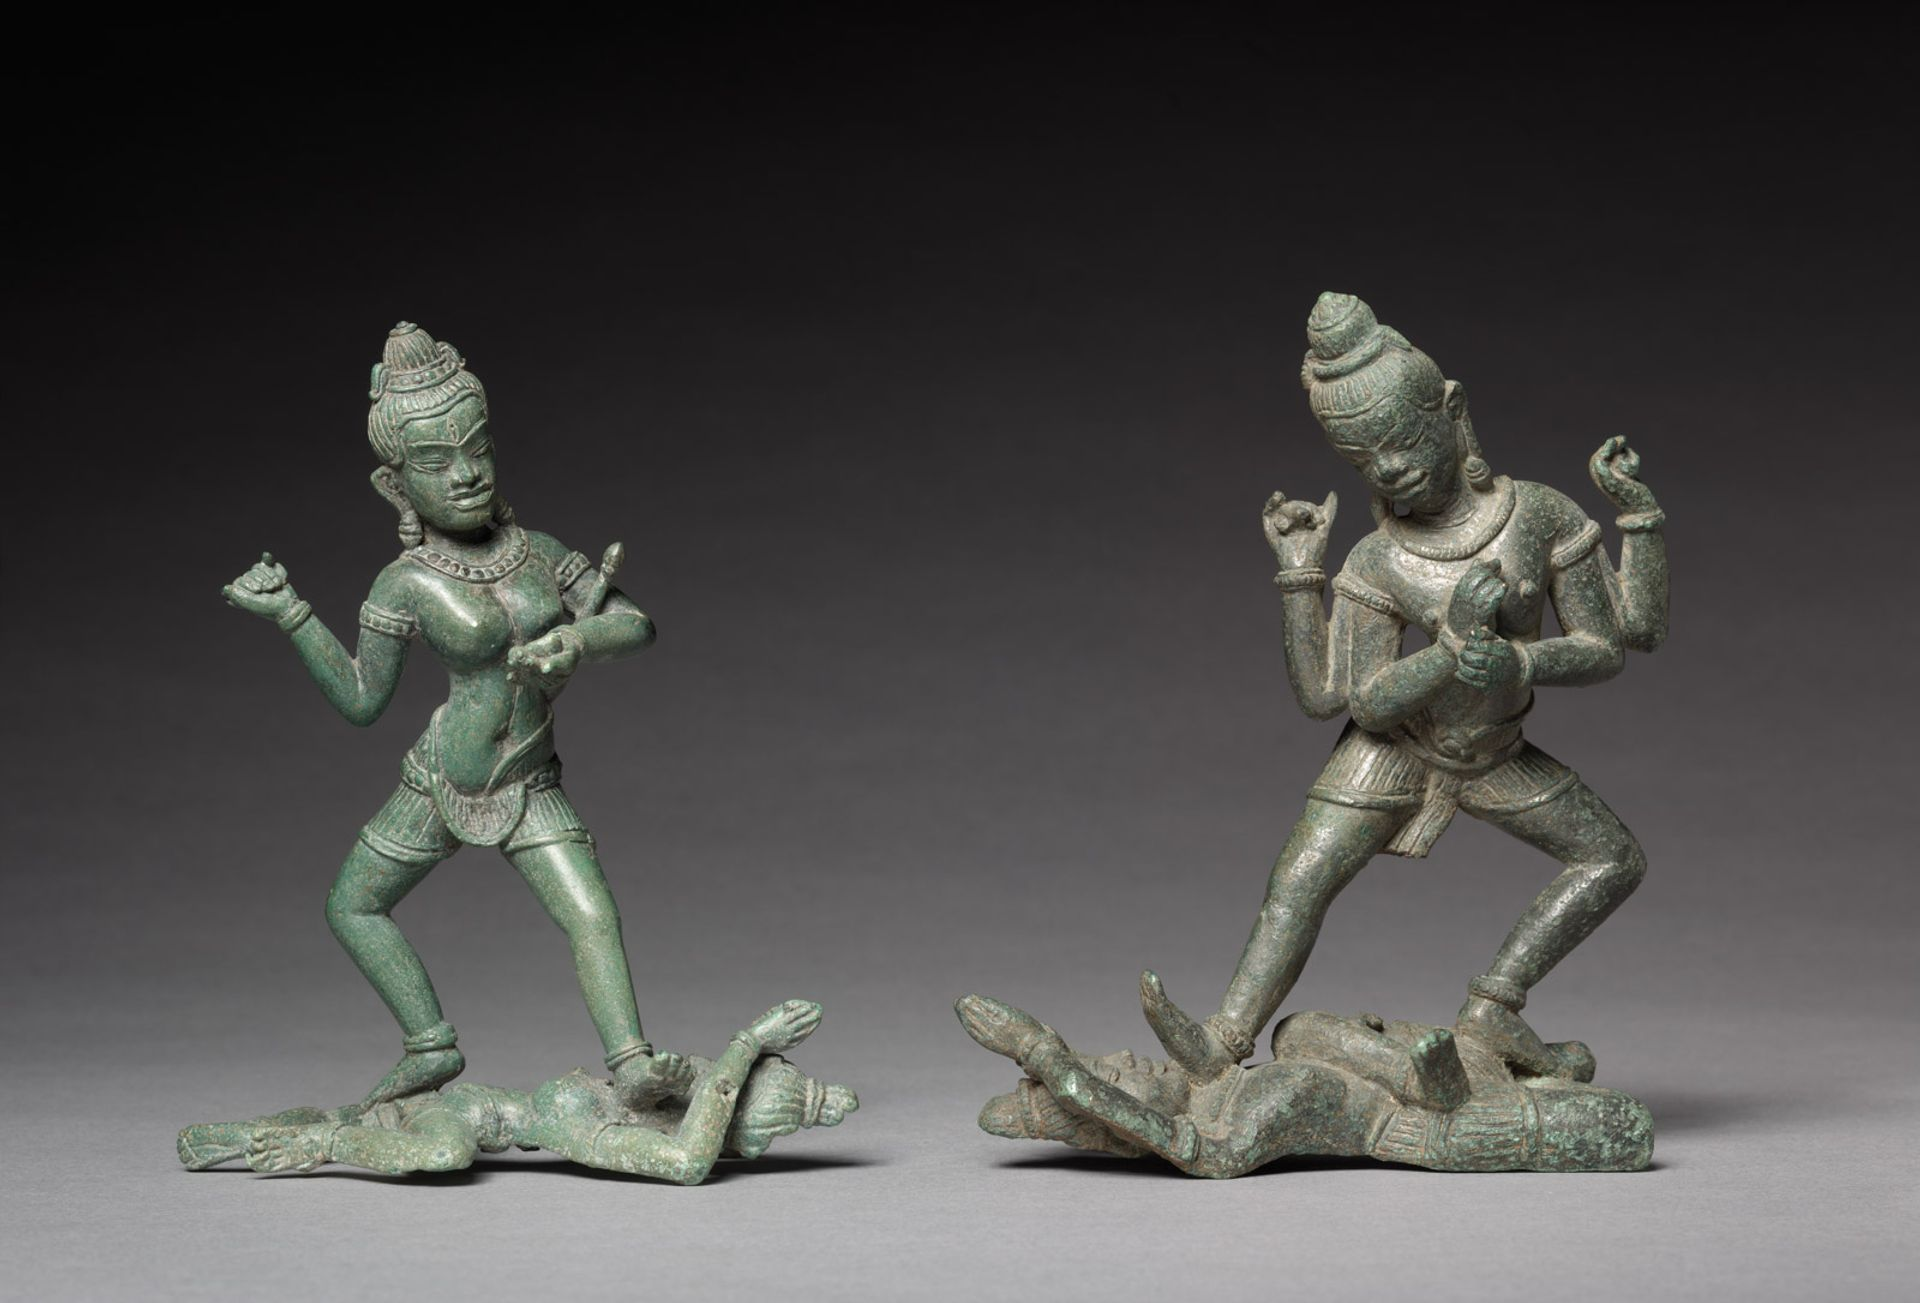 Shamvara and A Dakini (around 1100) was donated to the Cleveland Museum of Art by Douglas Latchford in 1983 Creative Commons, courtesy Cleveland Museum of Art